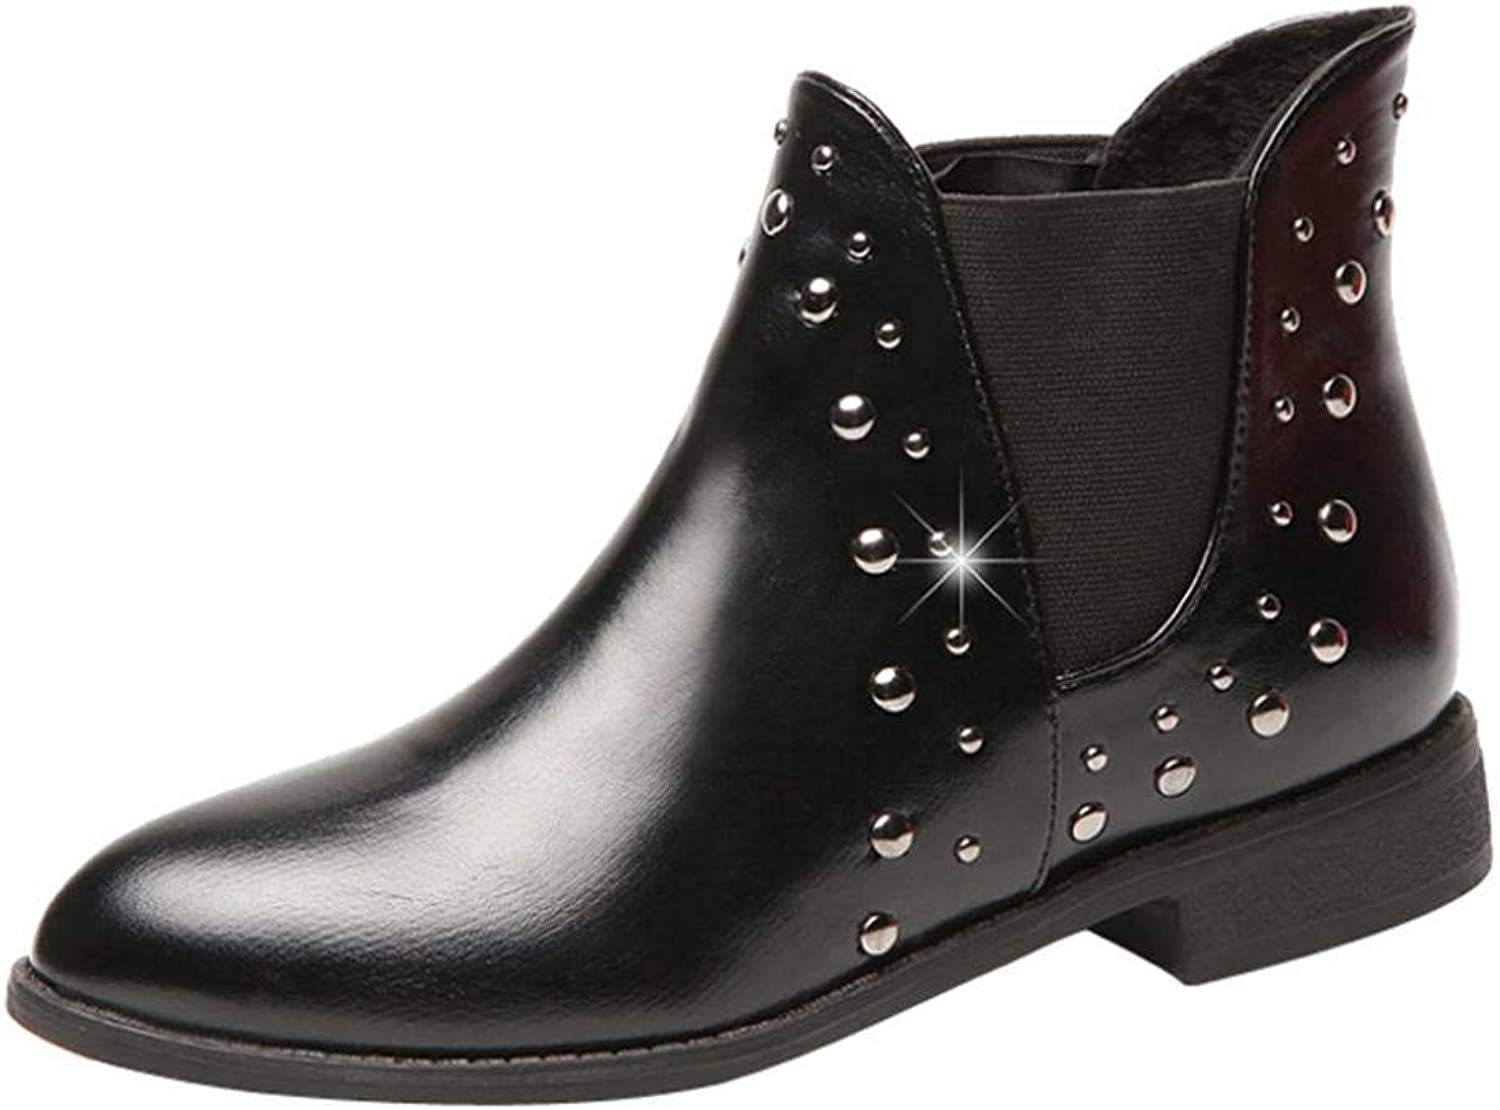 JaHGDU Women Casual Rivets shoes Keep Warm Boots Leather Flat Ankle Boots Martin Fashion Leisure Elegant Cosy Wild Tight Super Quality for Womens